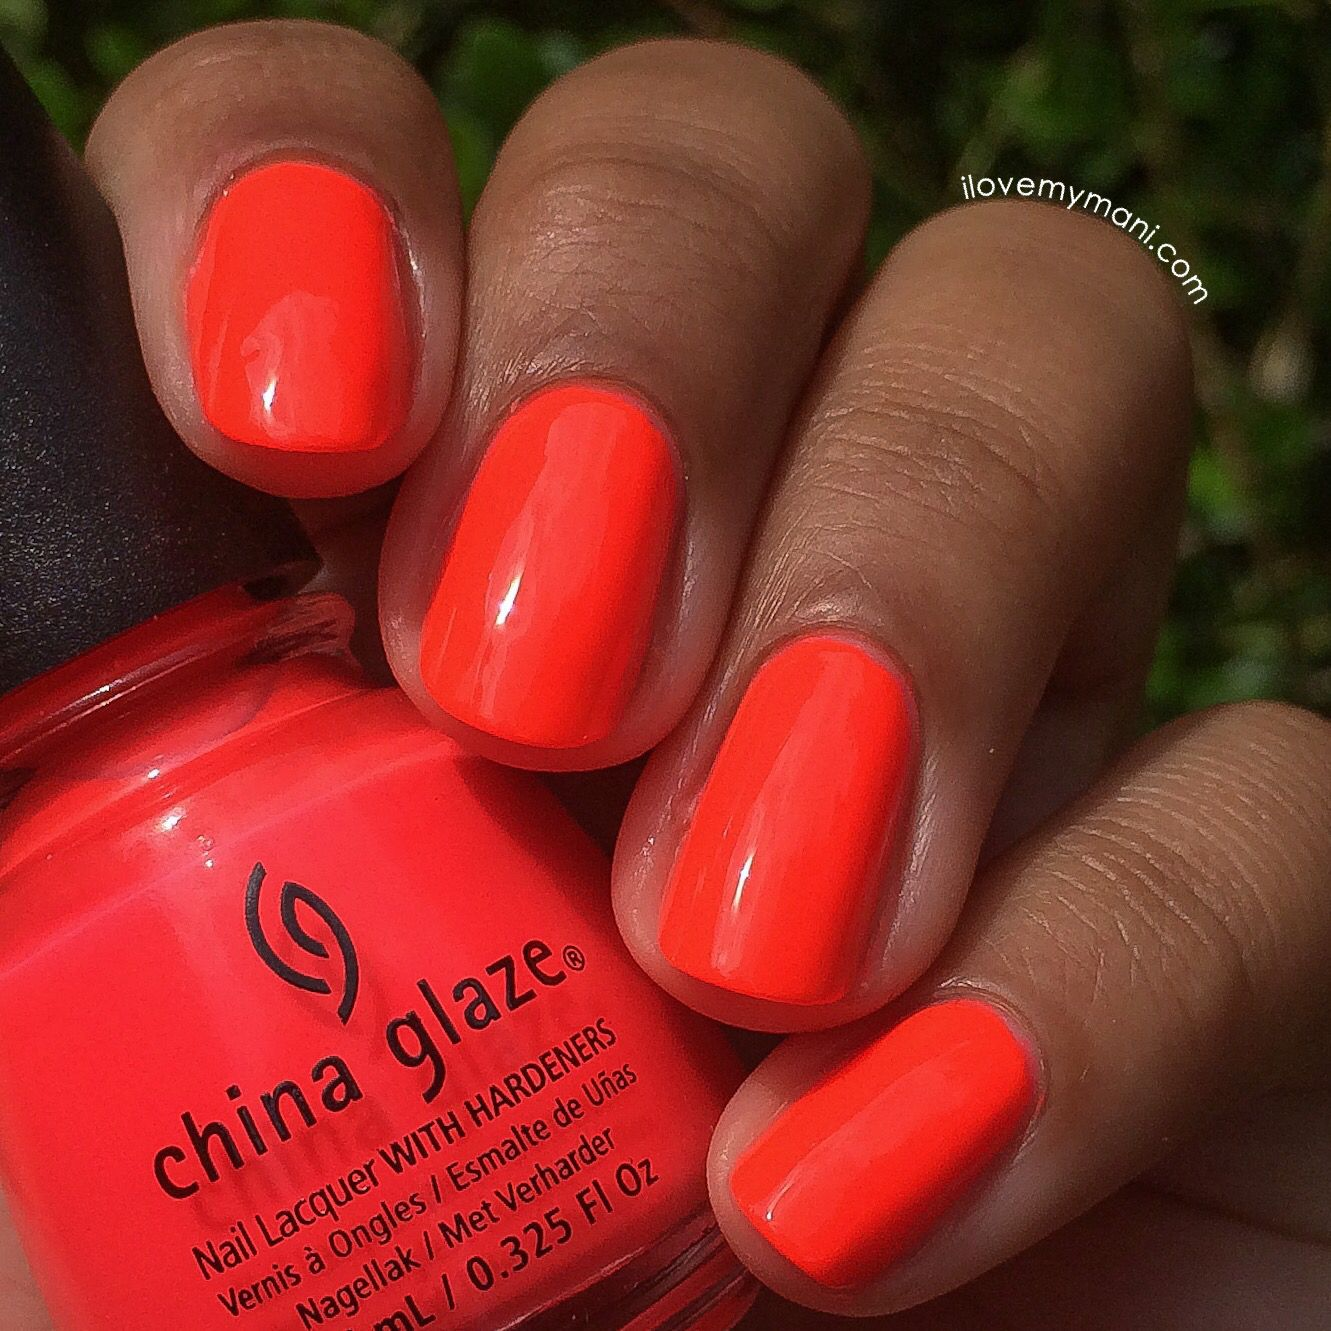 China glaze pool party got this color today cant wait to try china glaze pool party got this color today cant wait to try have glow in the dark lime green on now lol nvjuhfo Gallery